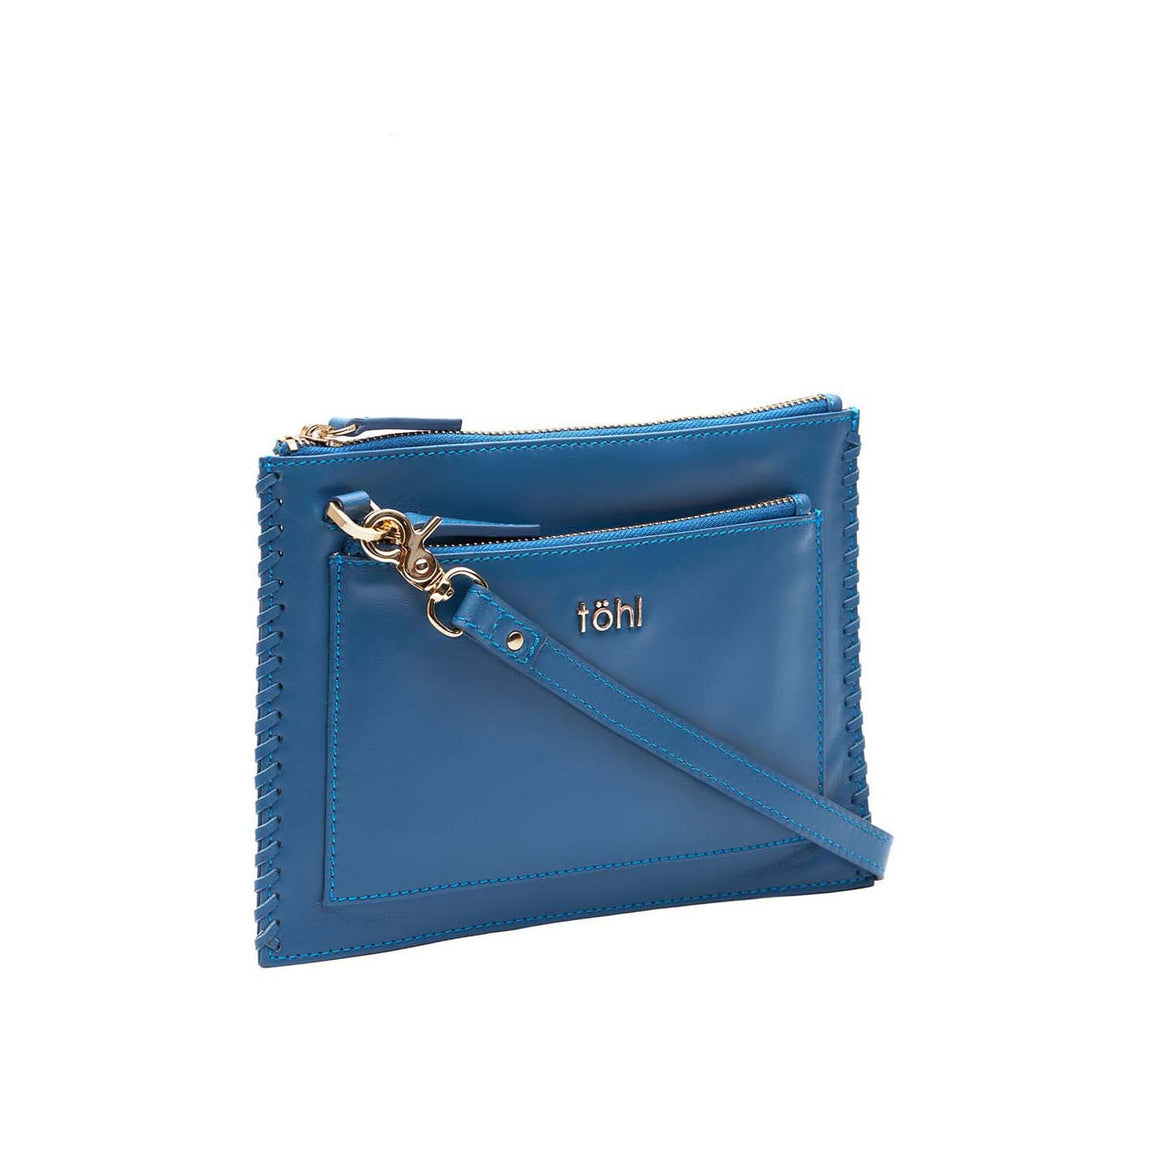 SG 0024 - TOHL ANMER WOMEN'S SLING & CROSSBODY BAG - AZURE